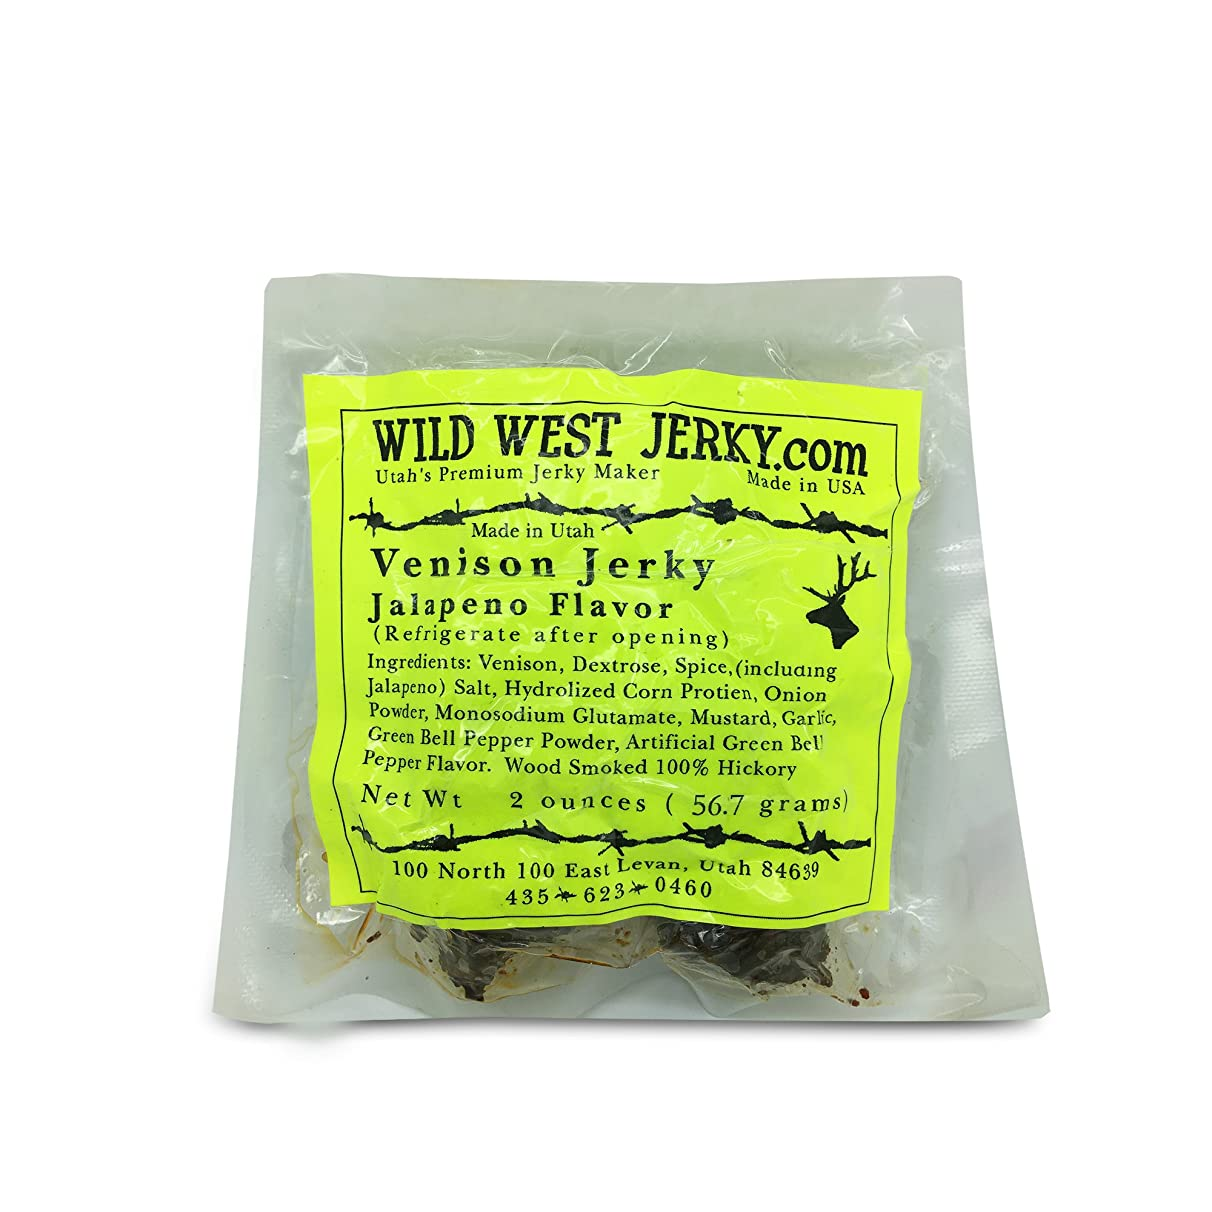 #1 BEST Premium 100% Natural Grass Fed Hand Stripped 2 OZ. Thick Cut Delicious Tasty Bold Flavor Venison (Deer) Jerky from Utah USA - Smoked With Hickory Wood by Wild West Jerky